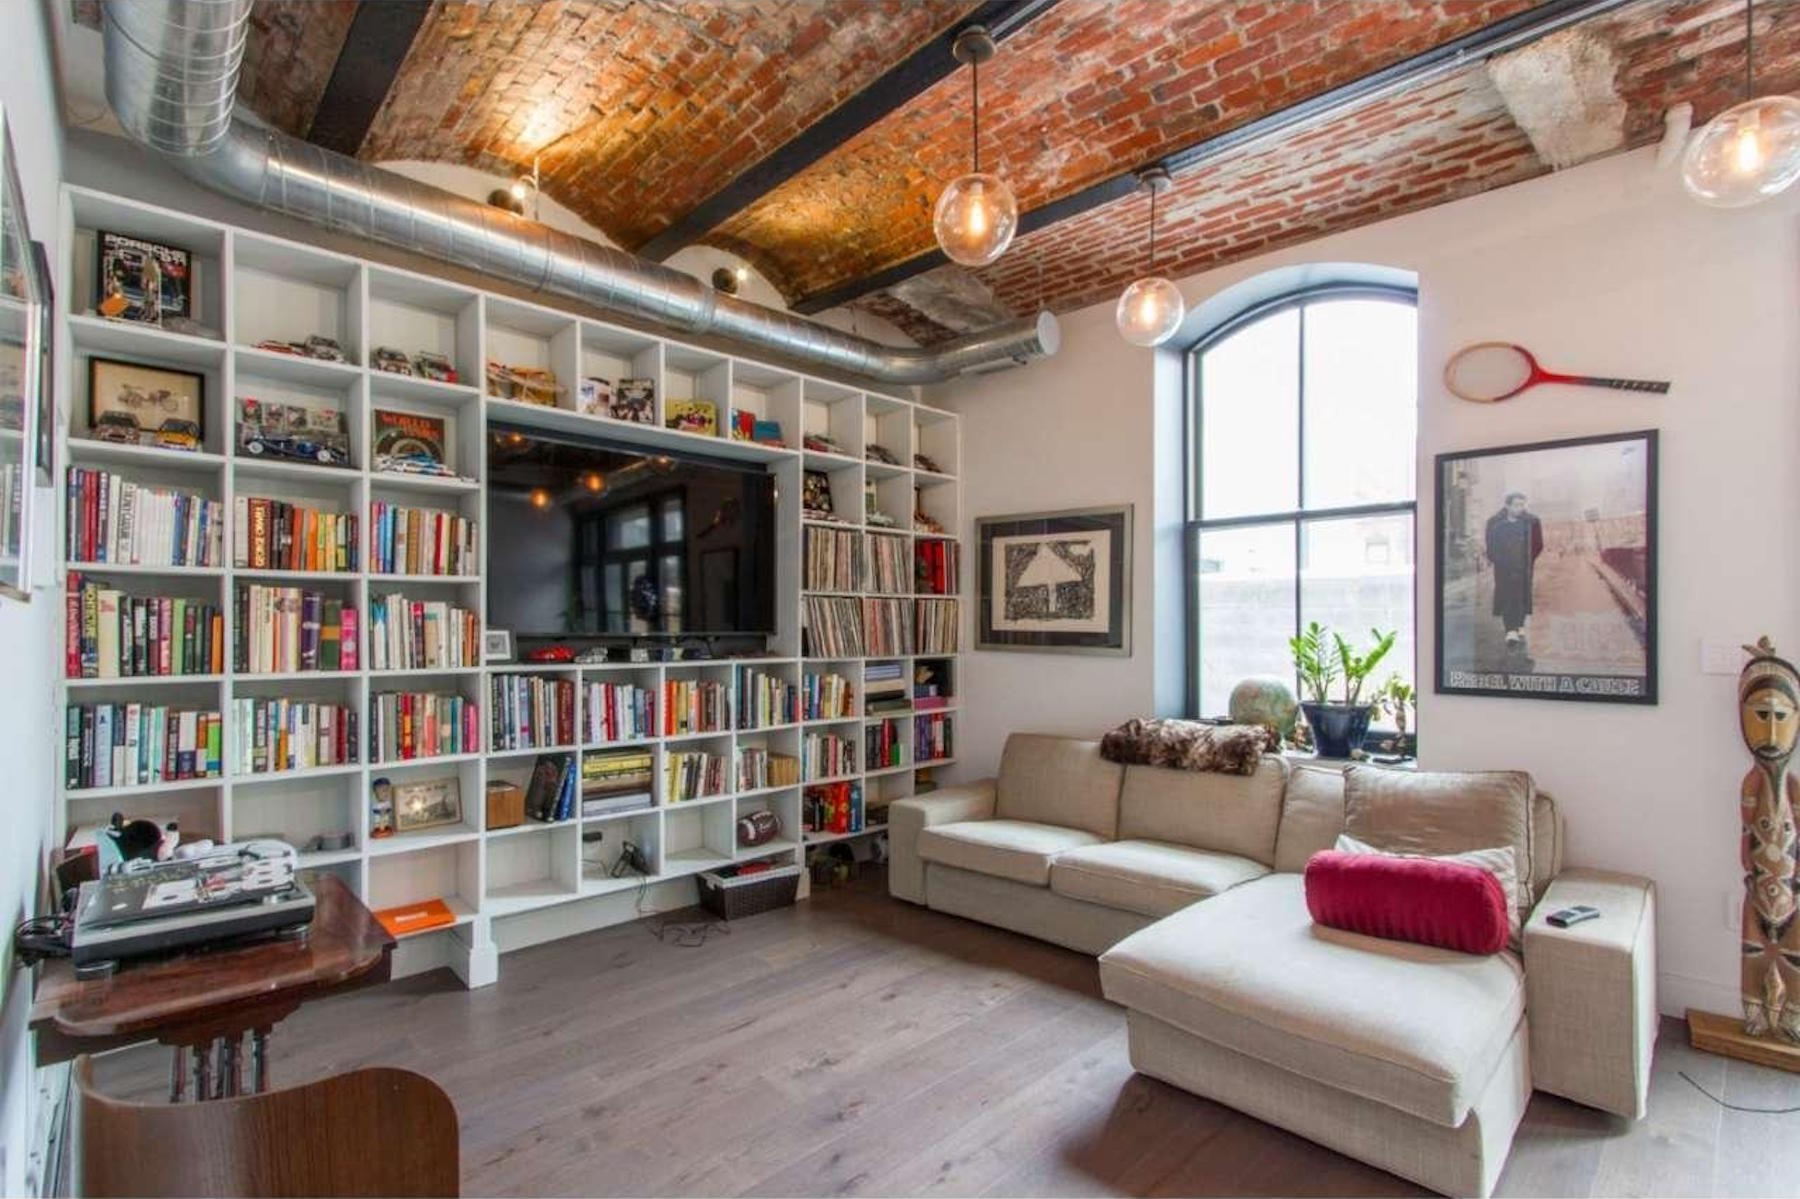 A living room with a wall of built-in bookcases and brick barrel ceilings.